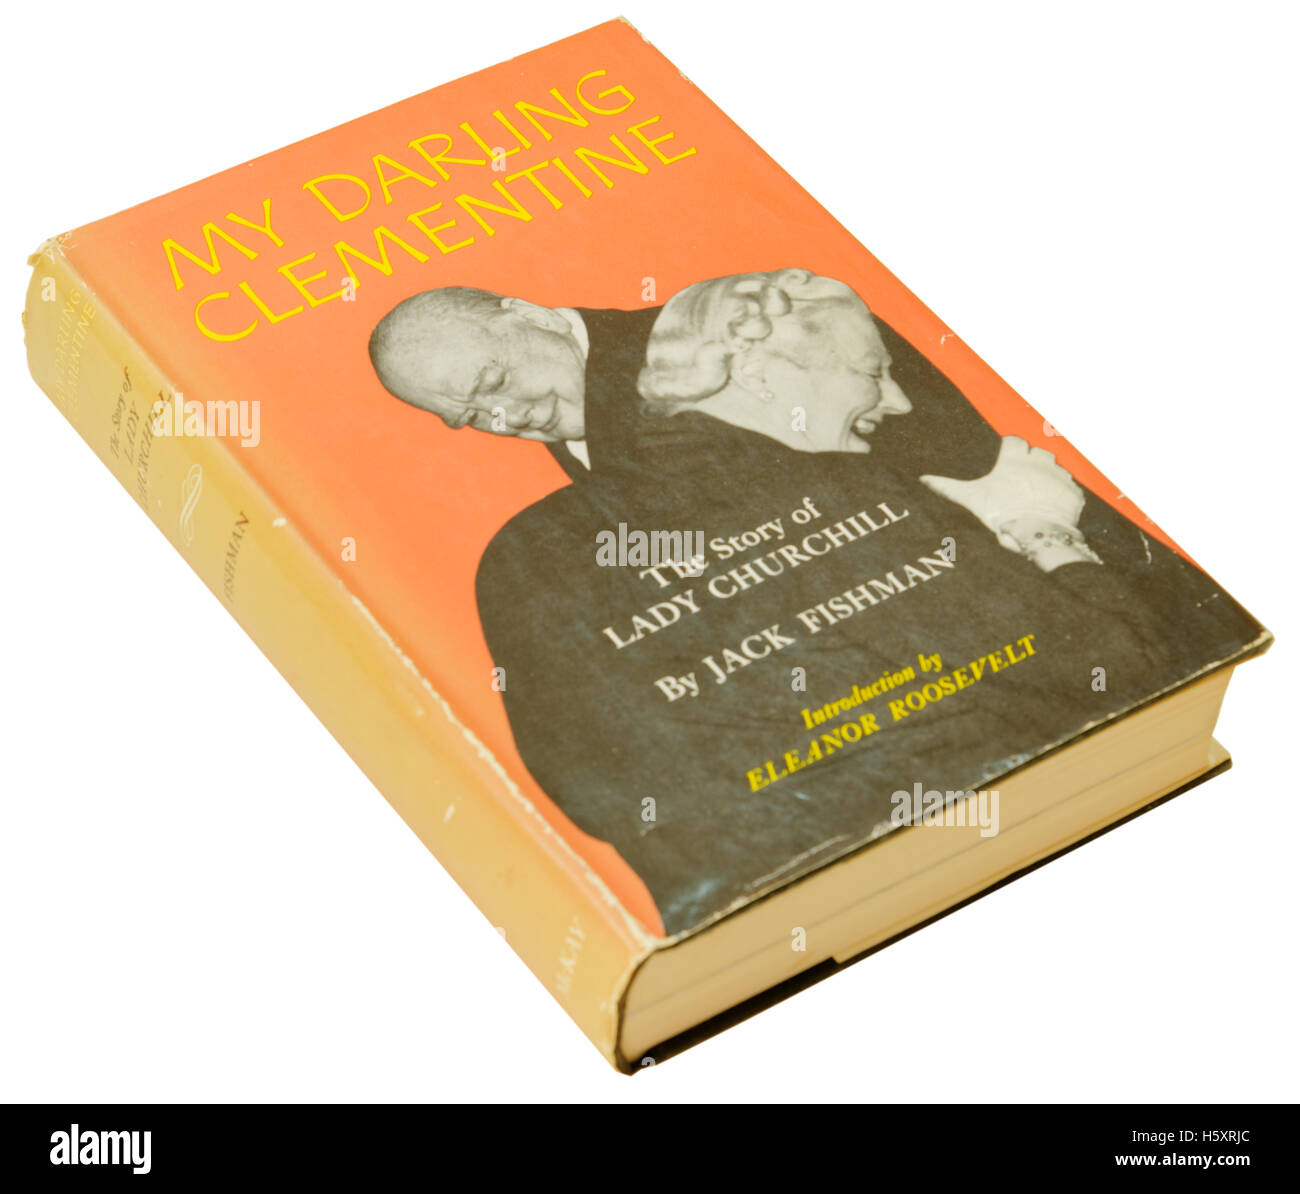 My Darling Clementine - The Story of Lady Churchill by Jack Fishman - Stock Image